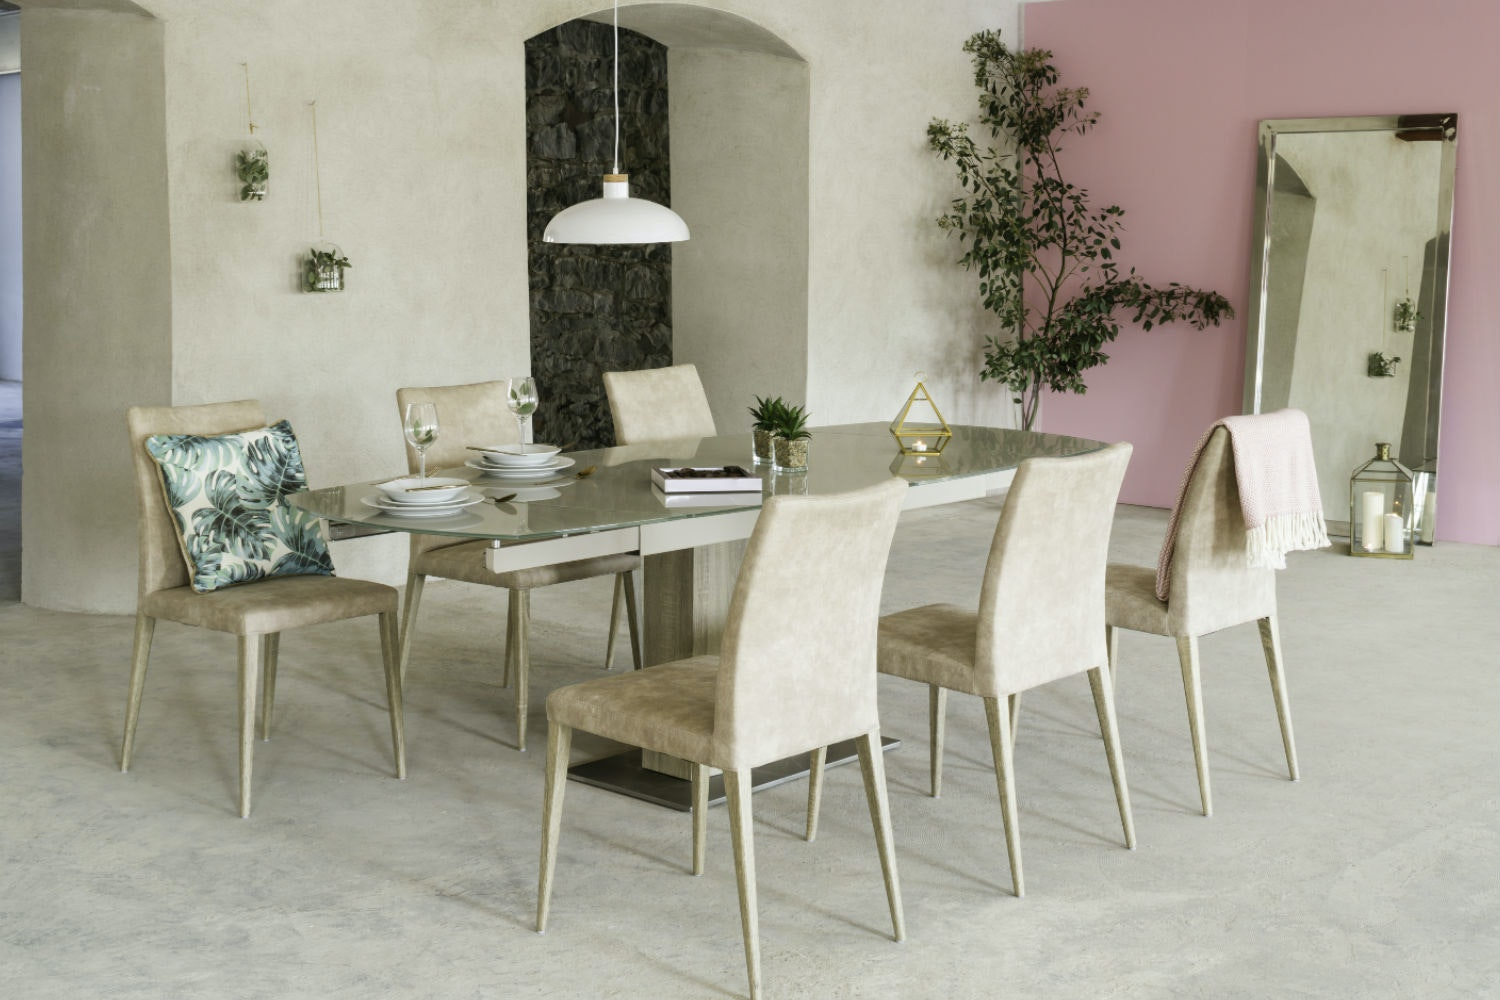 Lucci Light 9-Piece Dining Set | High Calvino Dining Chairs